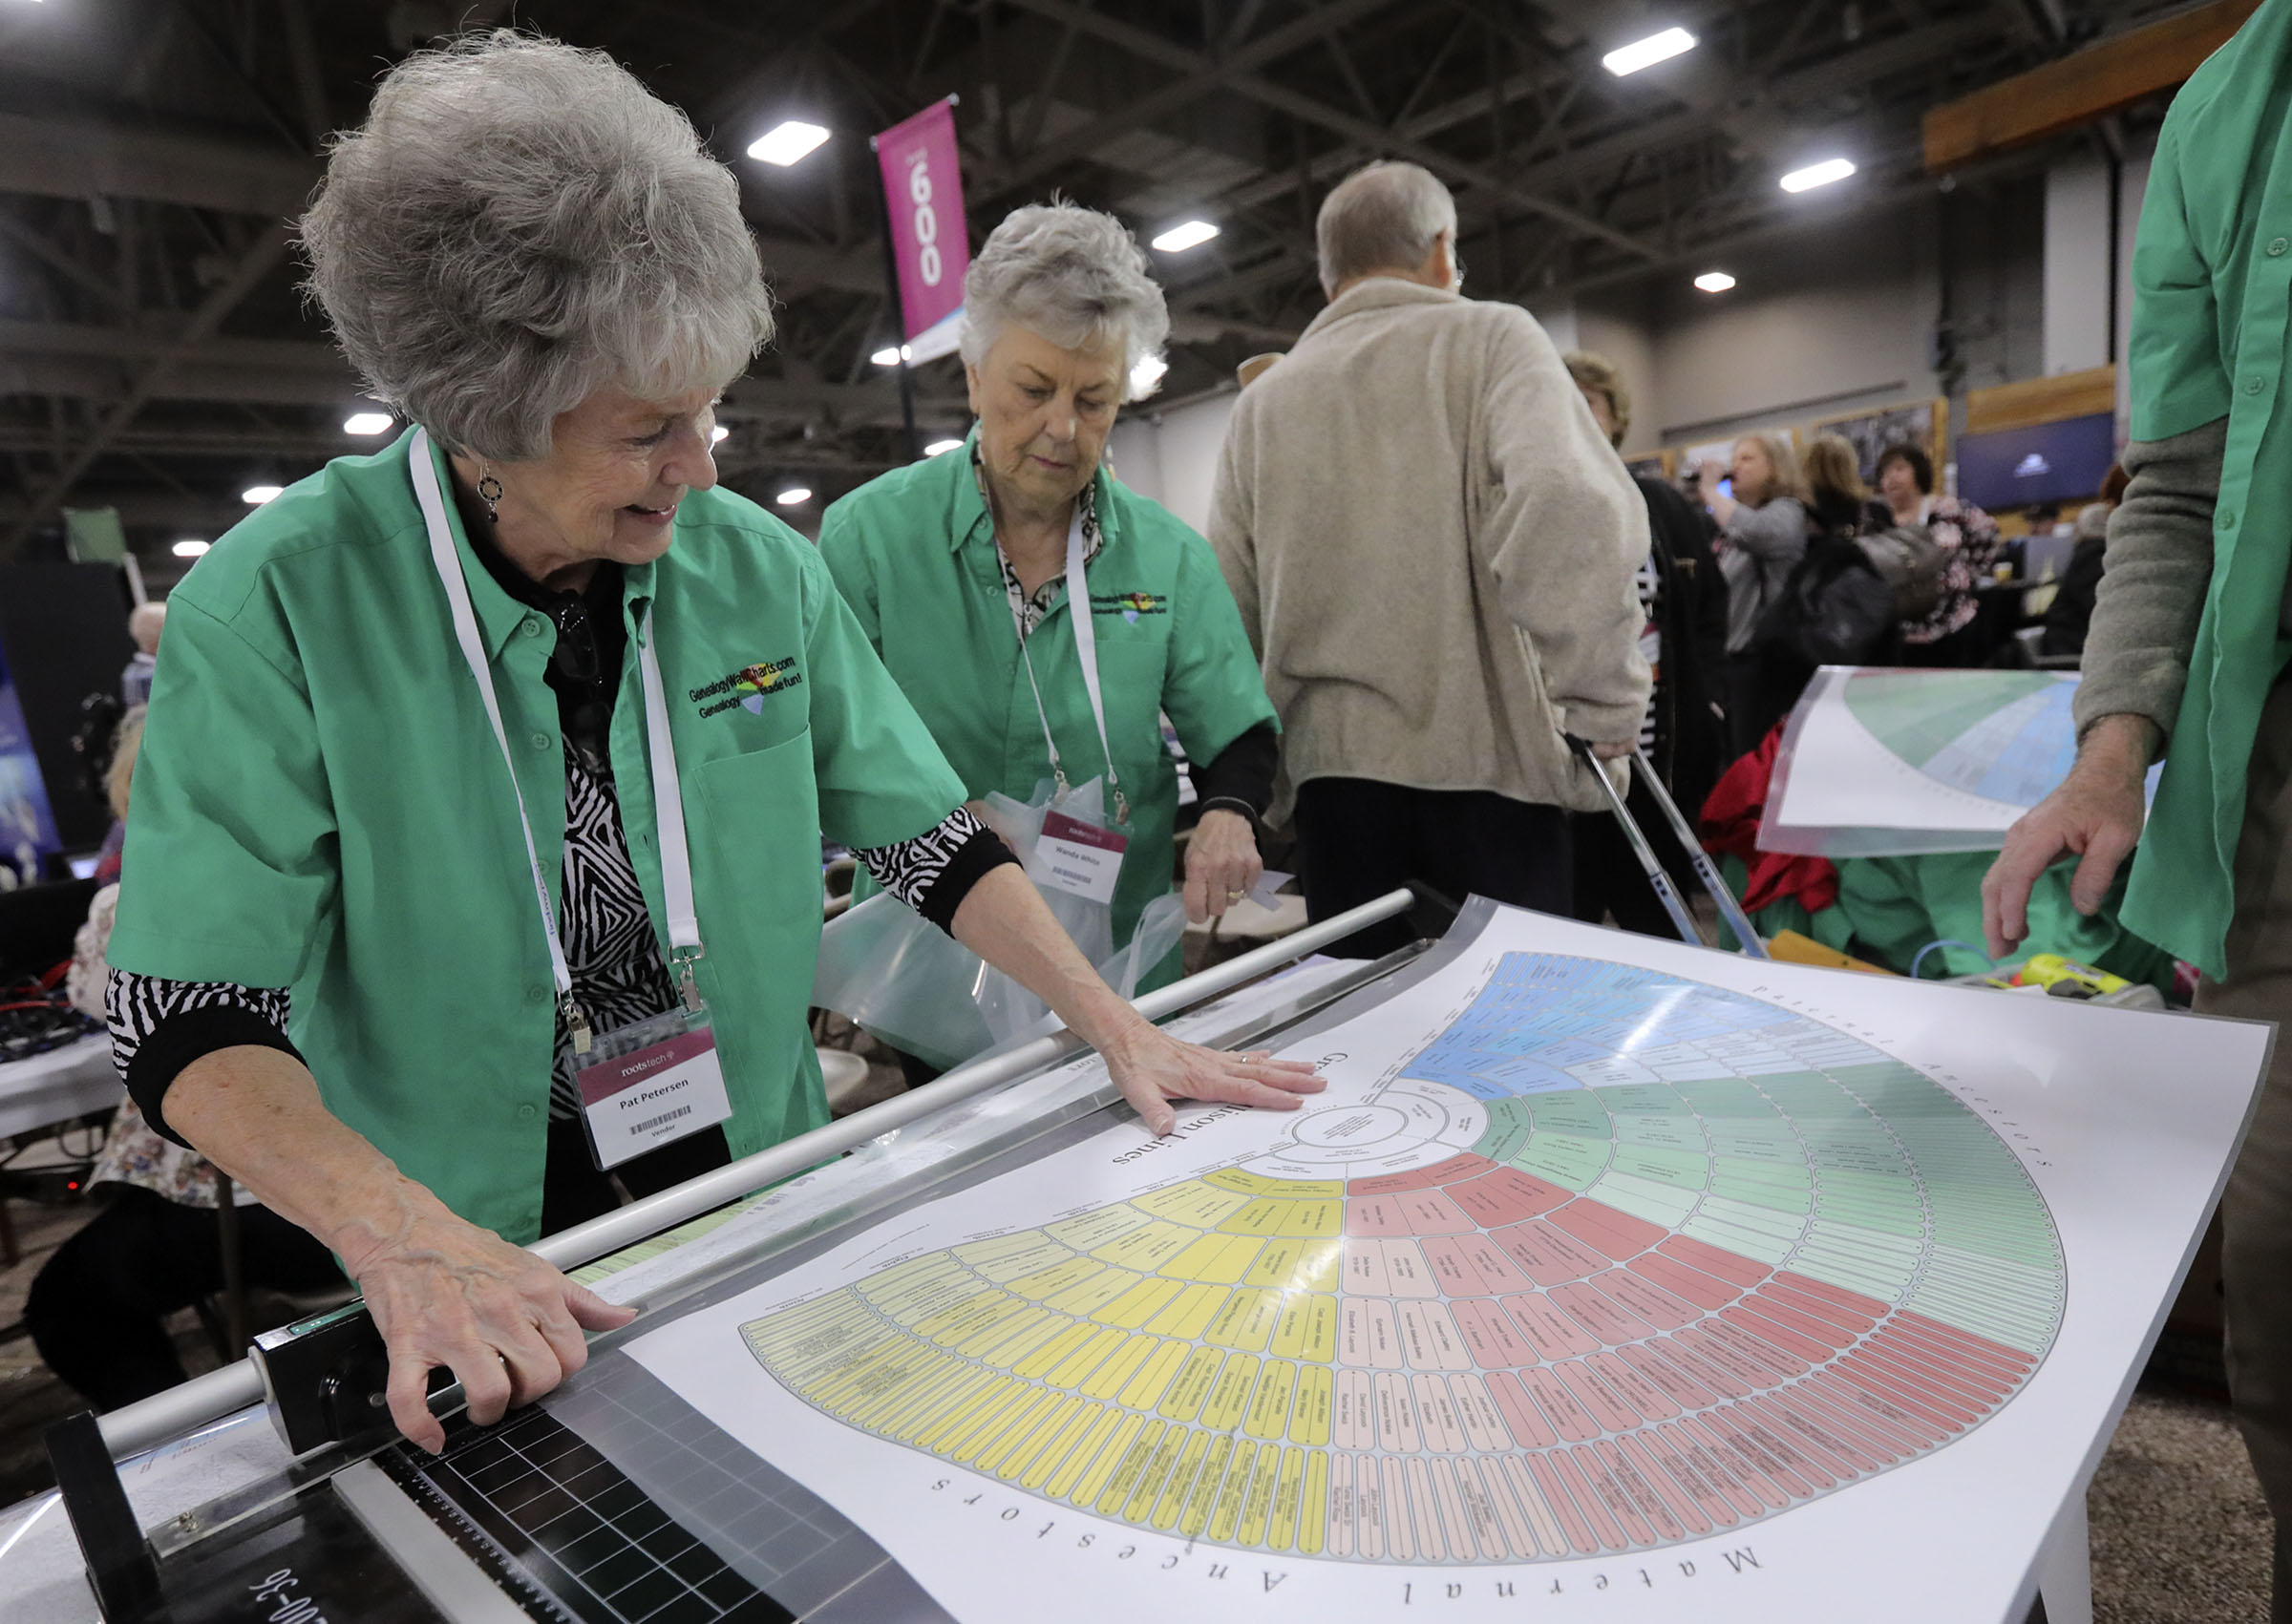 Pat Petersen trims a laminated genealogy chart at Genealogy WallCharts at RootsTech at the Salt Palace Convention Center in Salt Lake City on Thursday, Feb. 28, 2019.